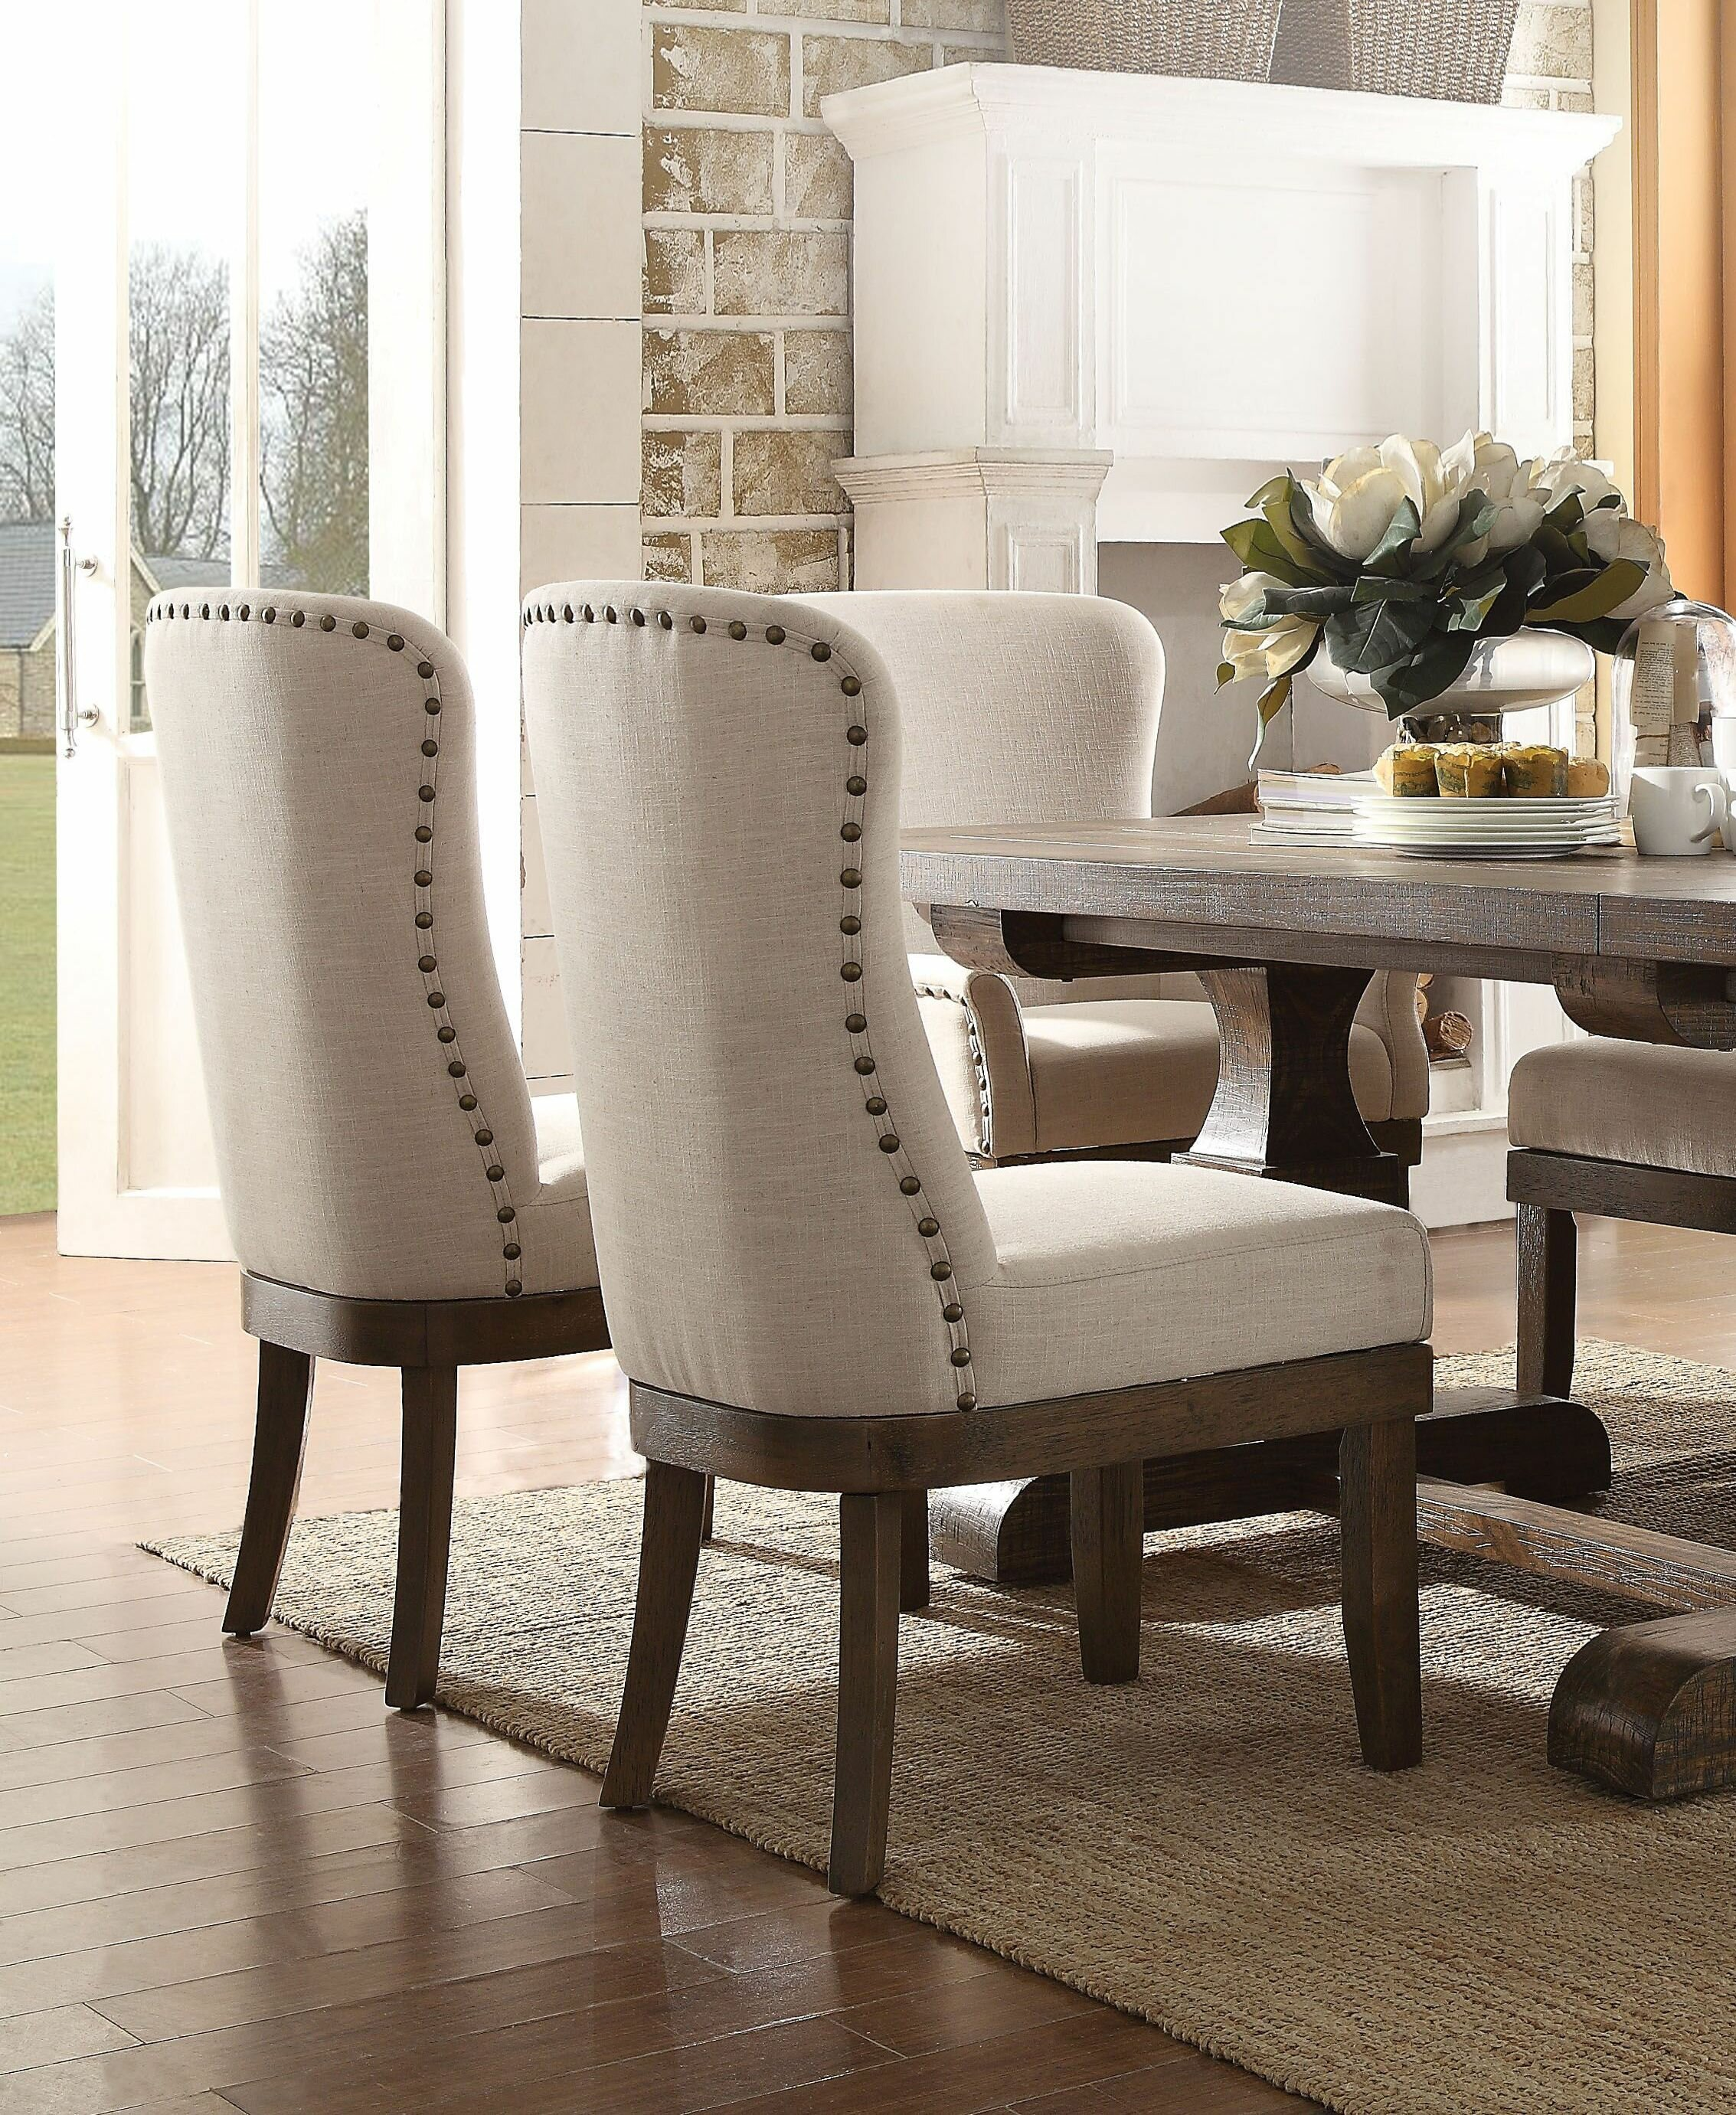 New Ideas Wayfair Living Room Chairs On Sale